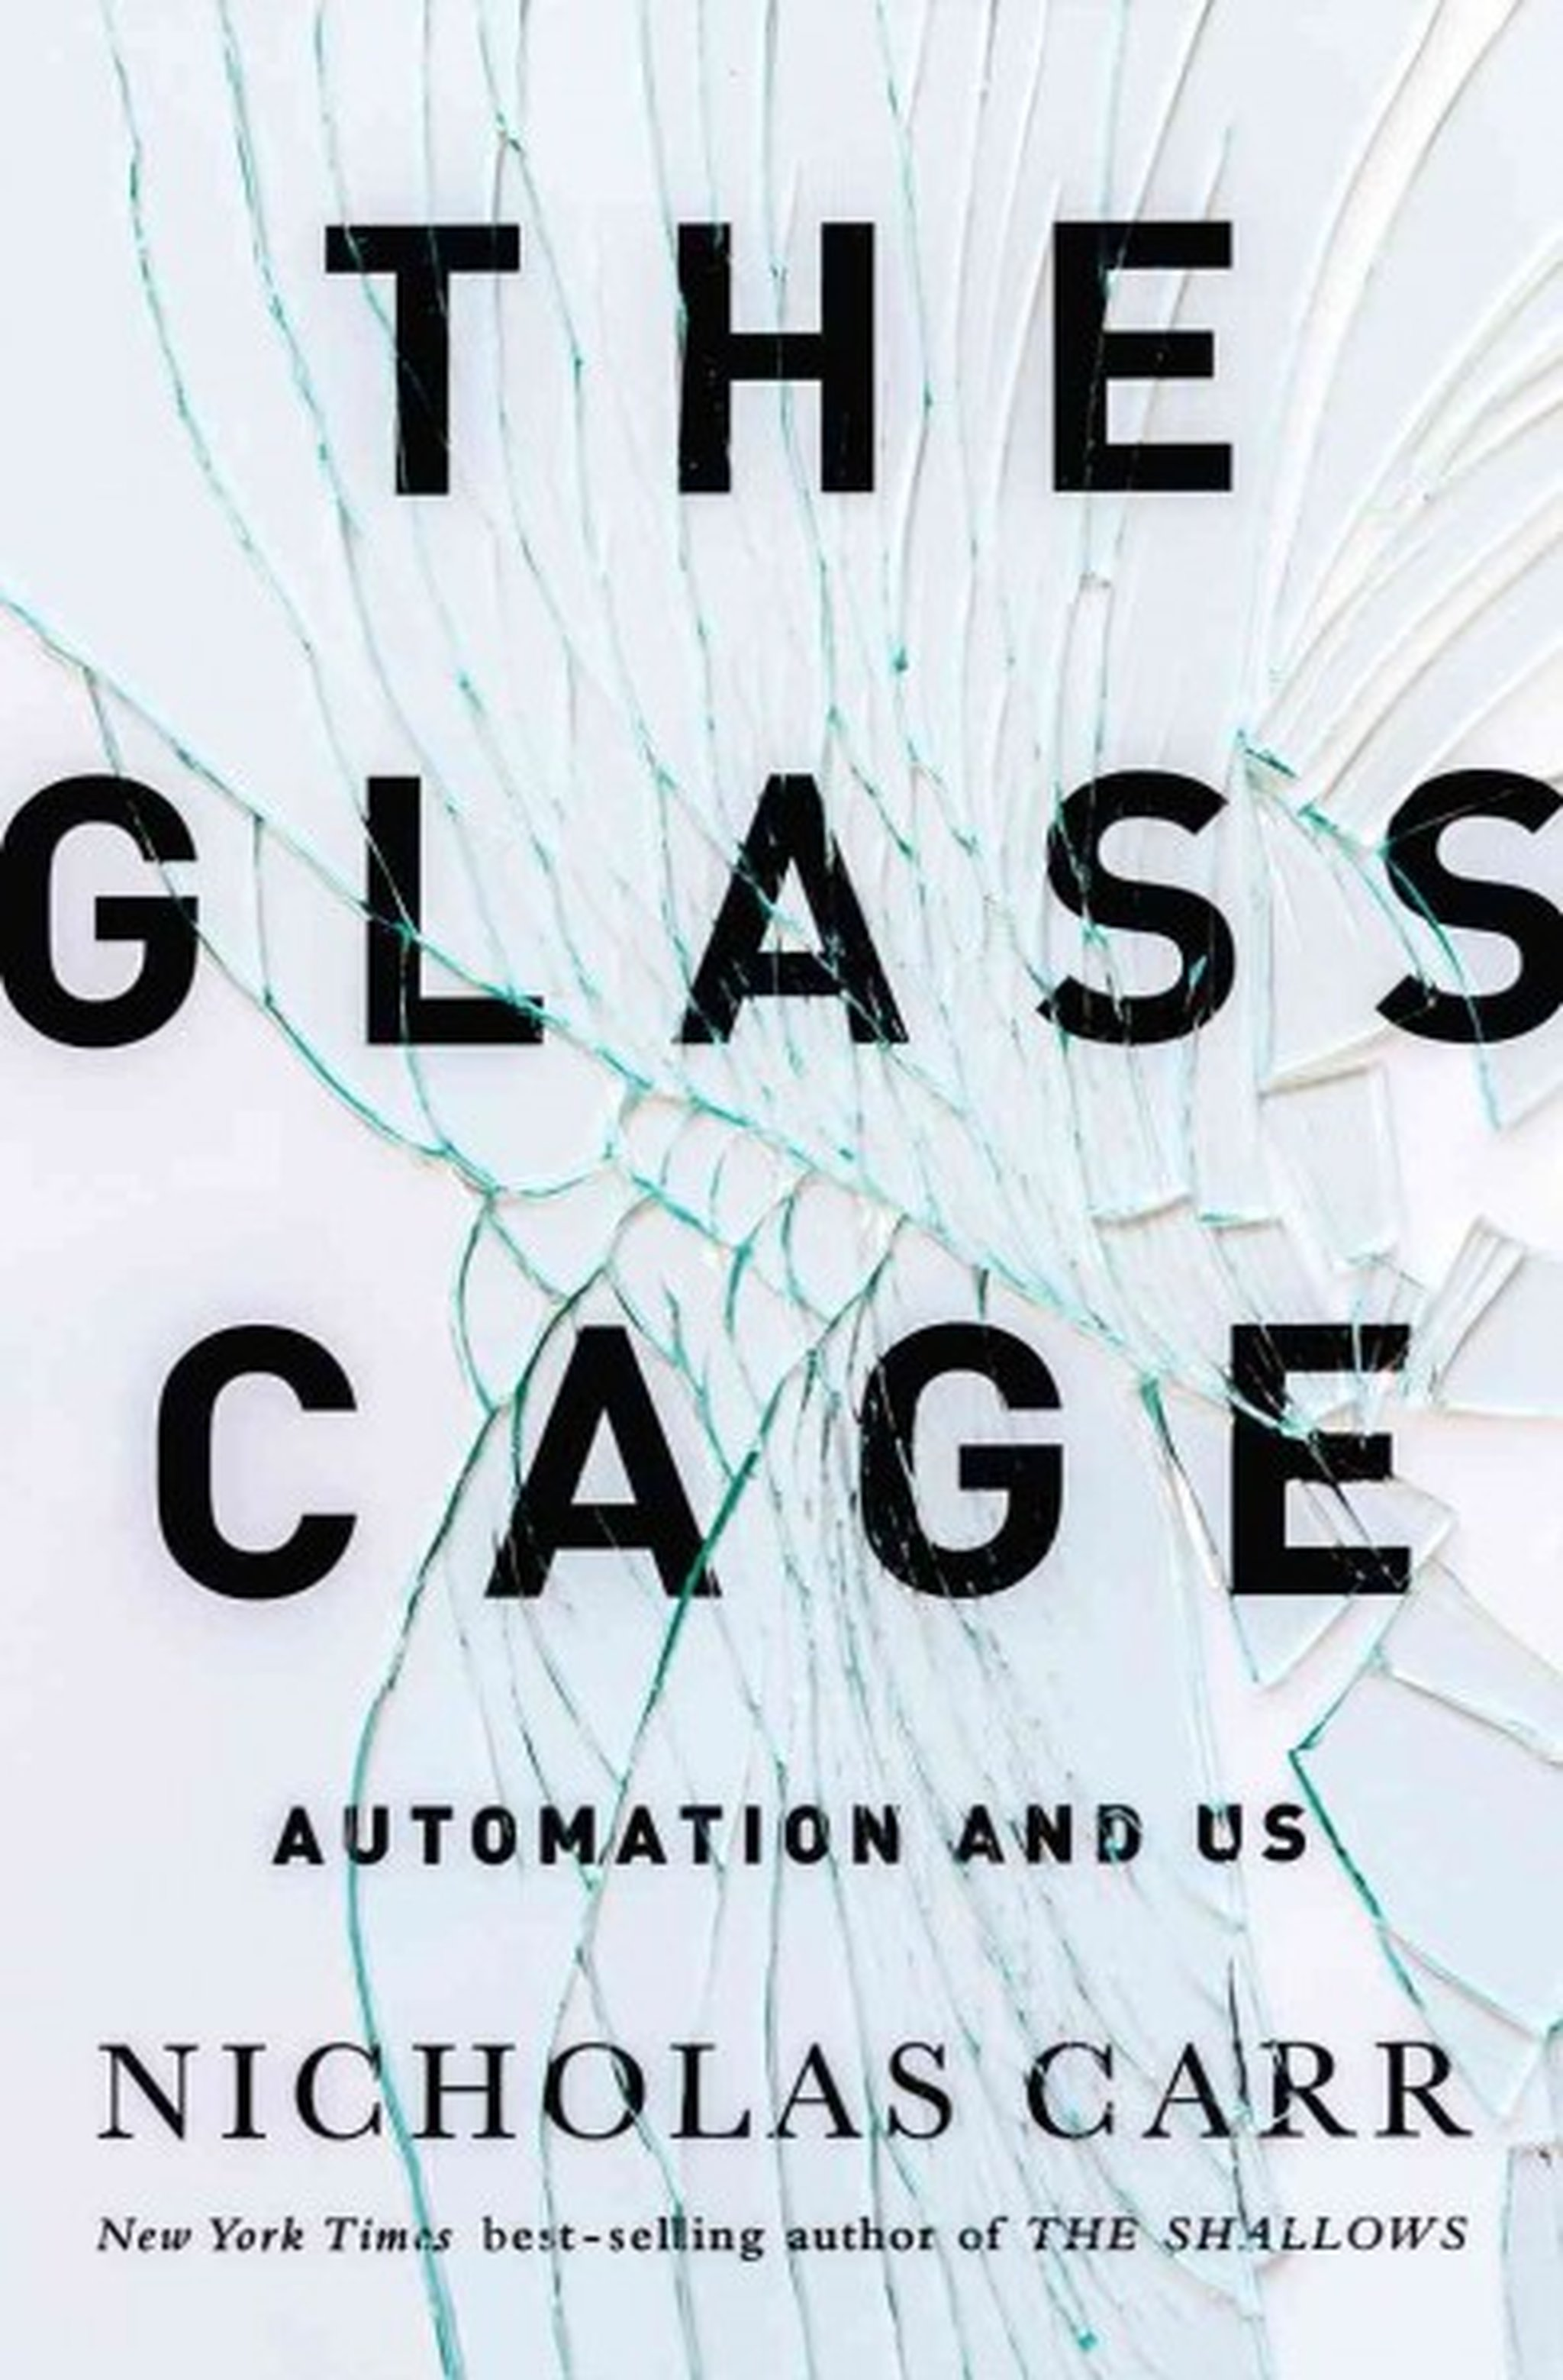 nicholas carr s glass cage automation will hurt society in long run is a vacuuming robot amoral